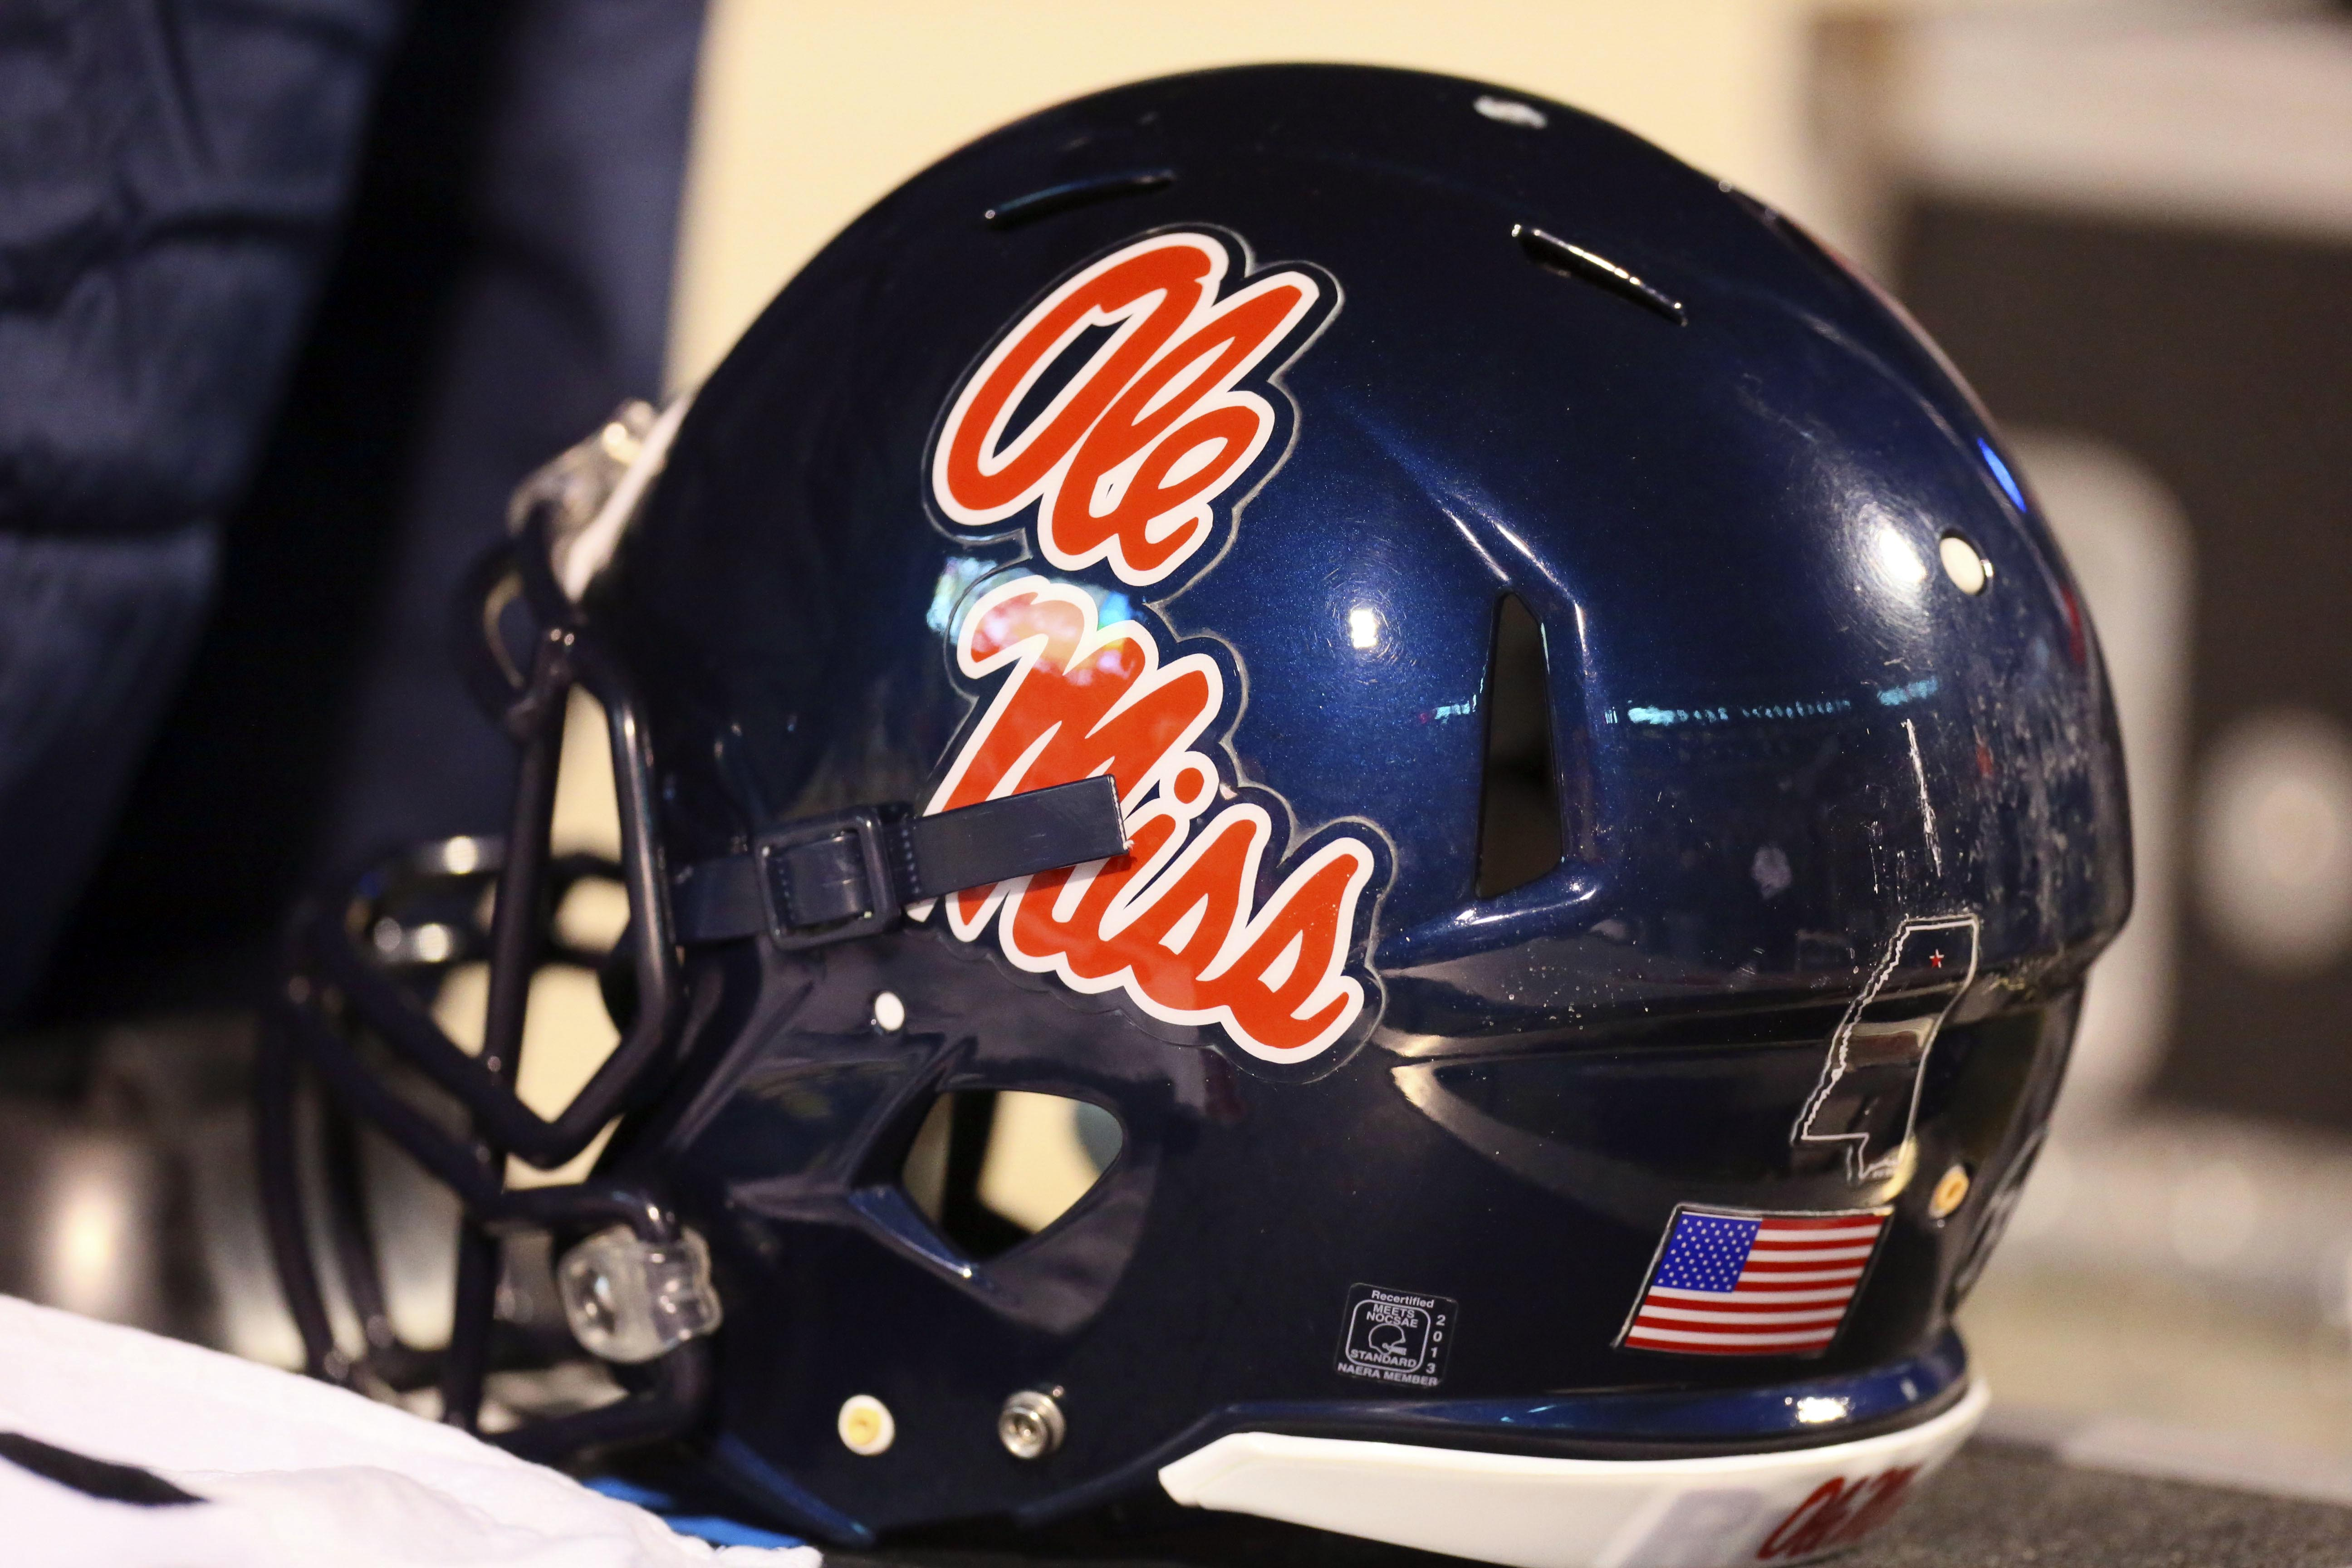 Ole Miss Sideline Reporter Sandroni Passes Away At 64